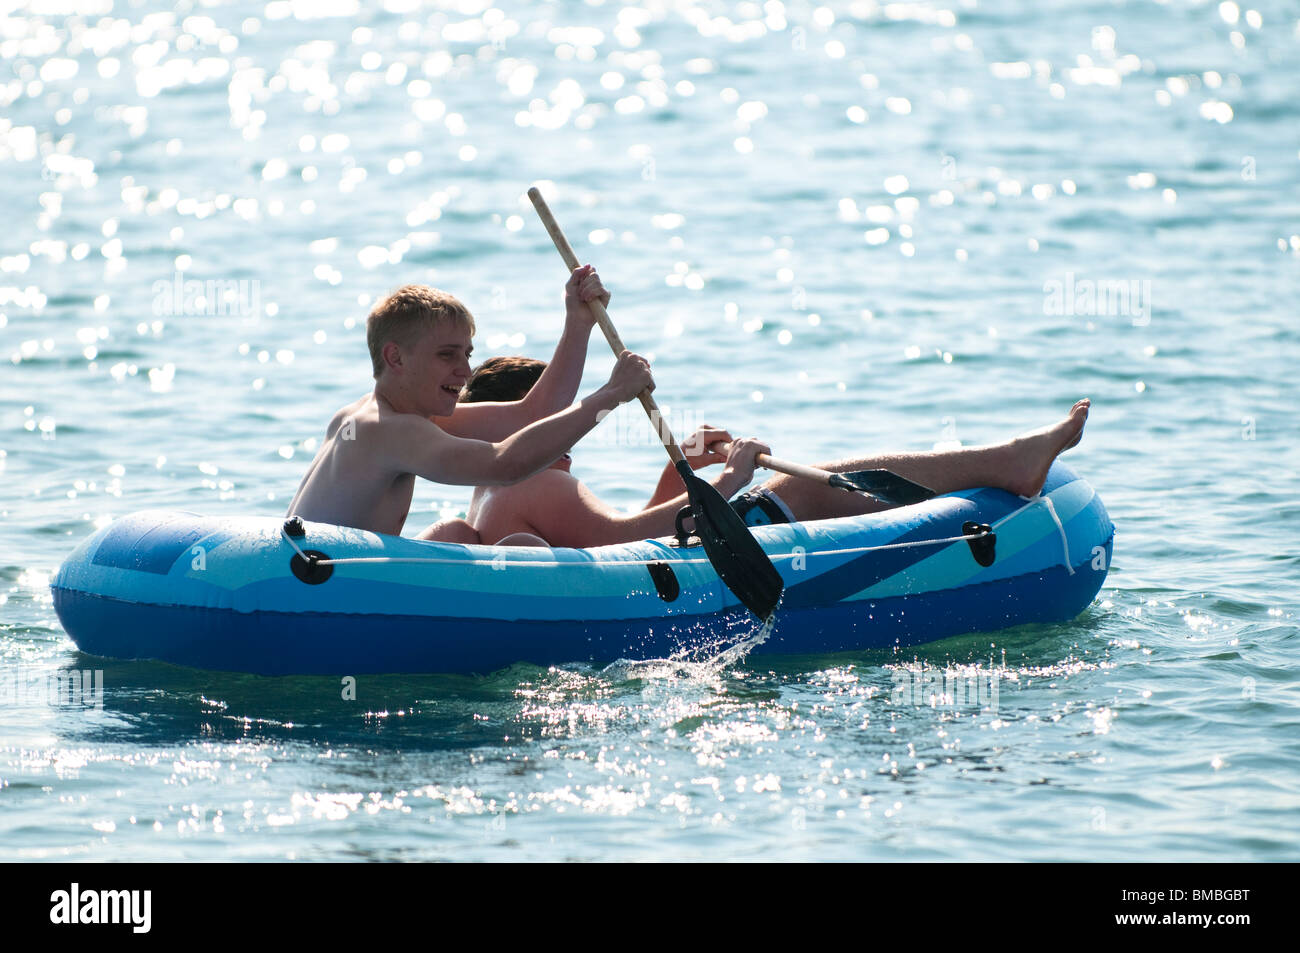 Two young students rowing an inflatable raft dinghy in the sea, Aberystwyth Wales UK - Stock Image